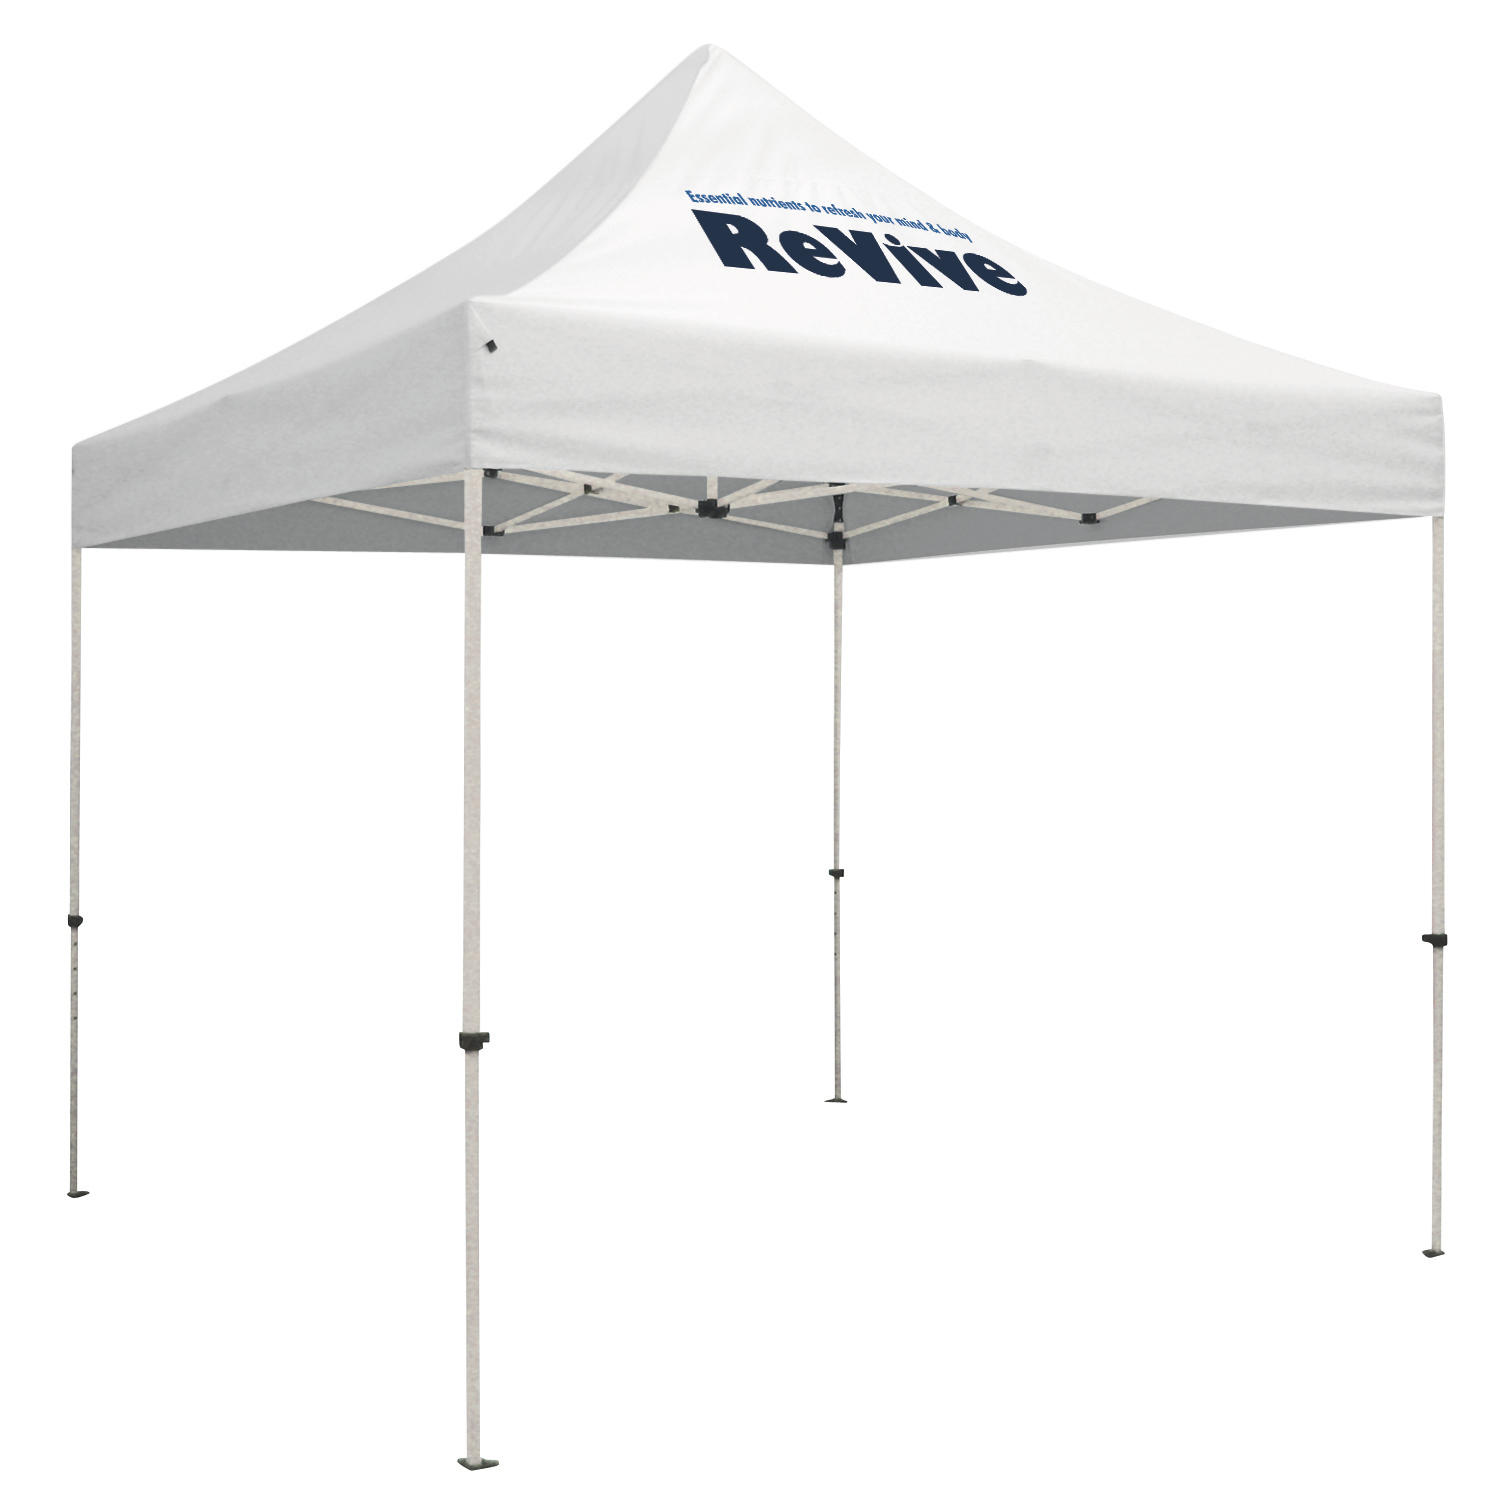 Promotional Tent ...  sc 1 st  Promo Excitement & Promotional Tent Kit - 10u0027 X 10u0027 - Promo Excitement